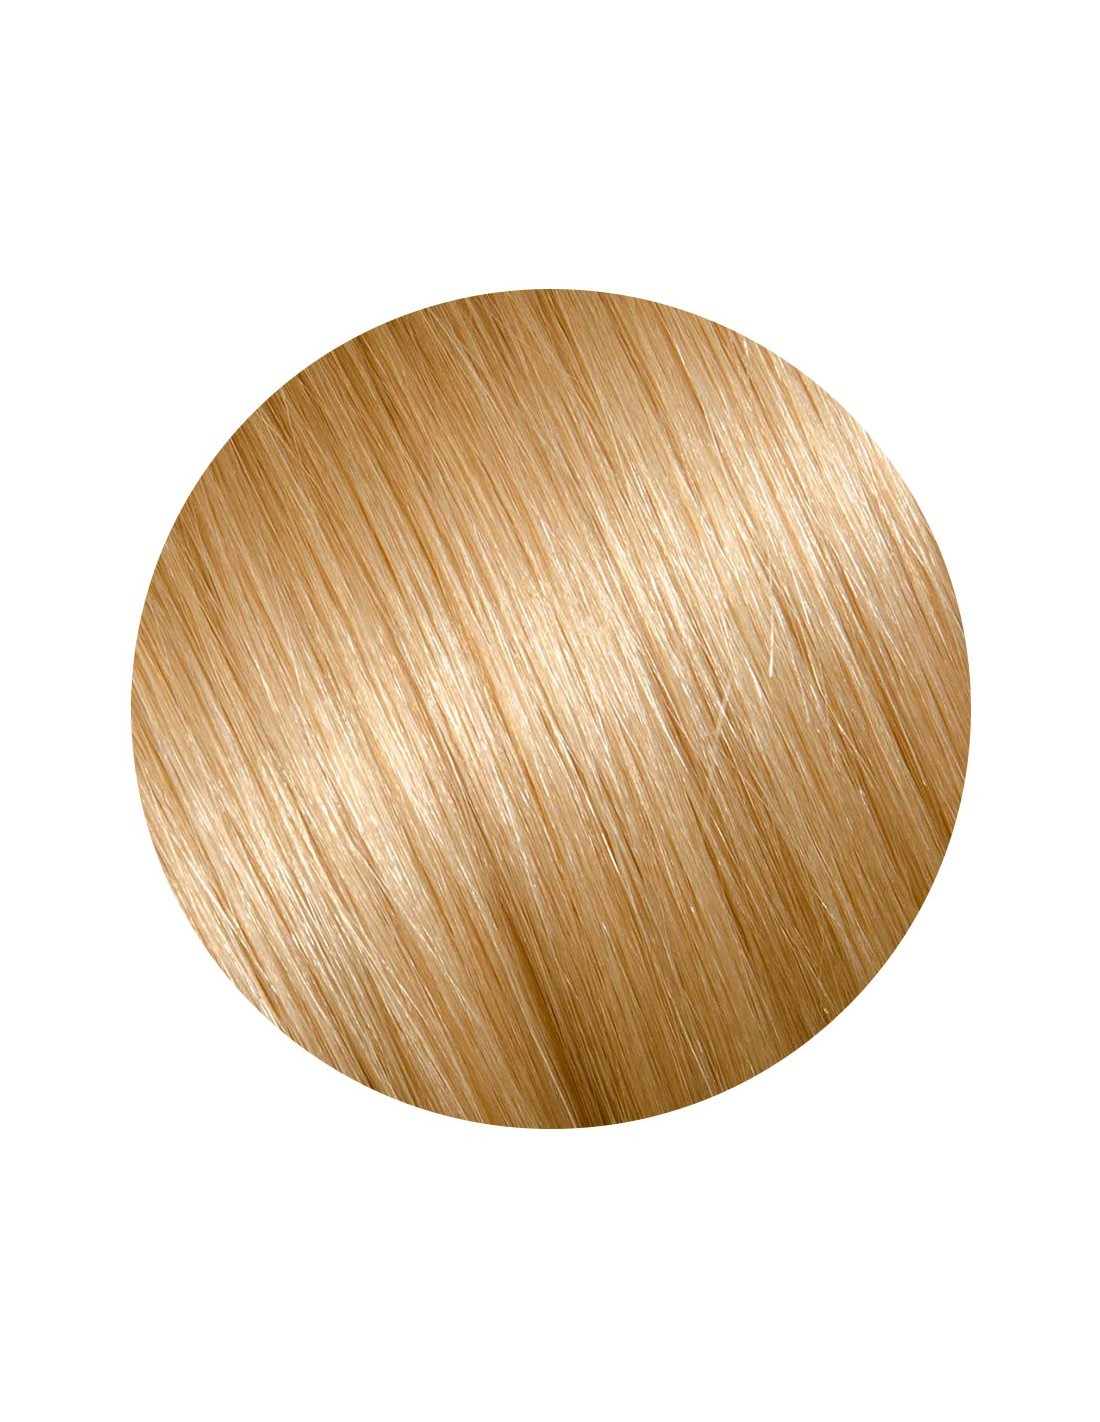 Extensii Clip On De Lux Blond Piersica 26 45 cm 26 - Blond Piersica